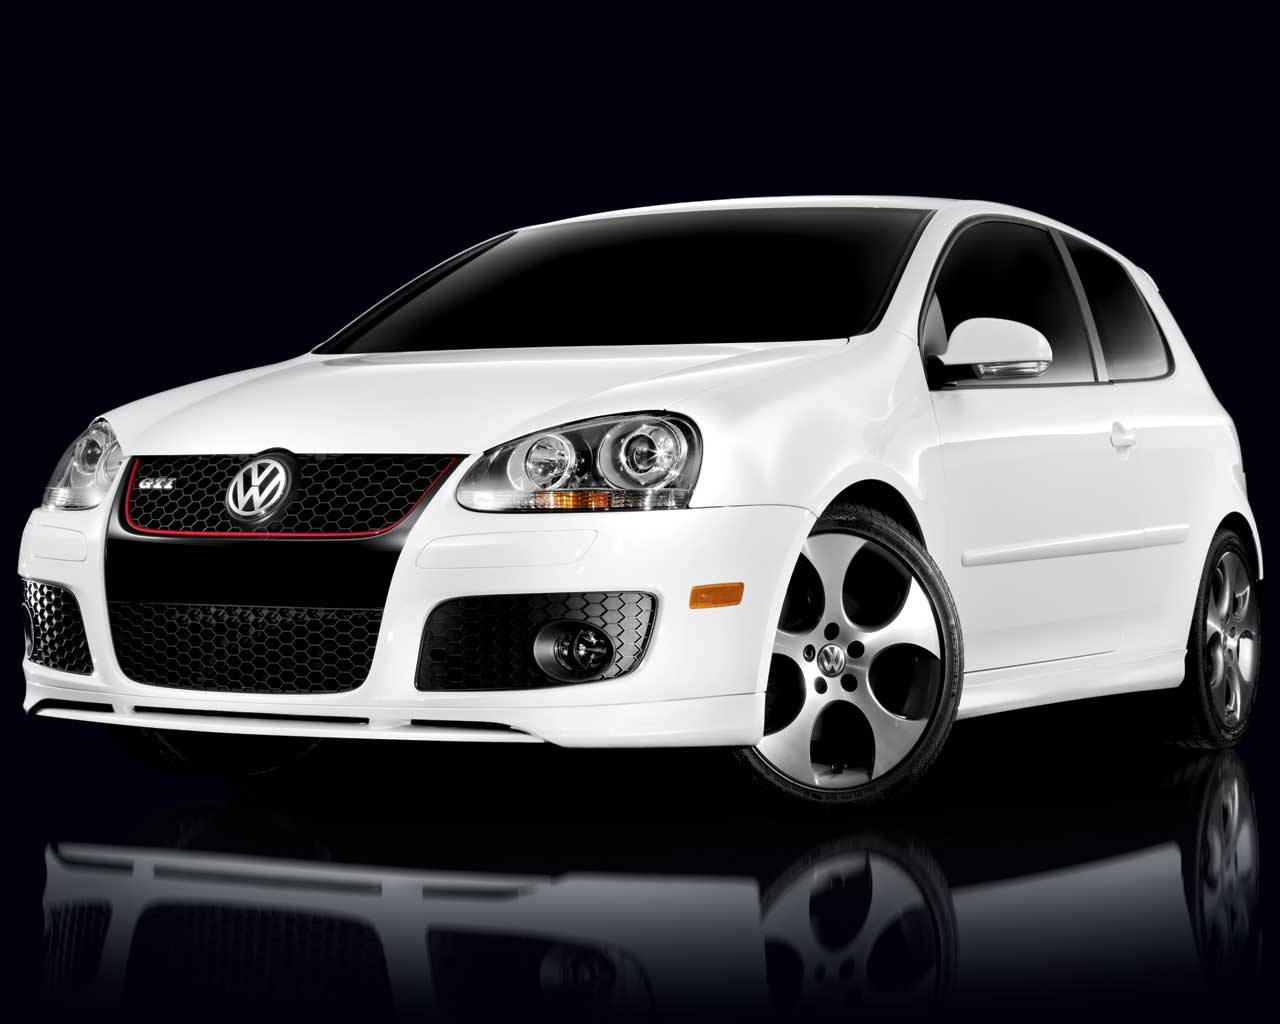 Schmidt Vw Golf Gti Wallpaper 1920x1080PX ~ Wallpaper Gti #